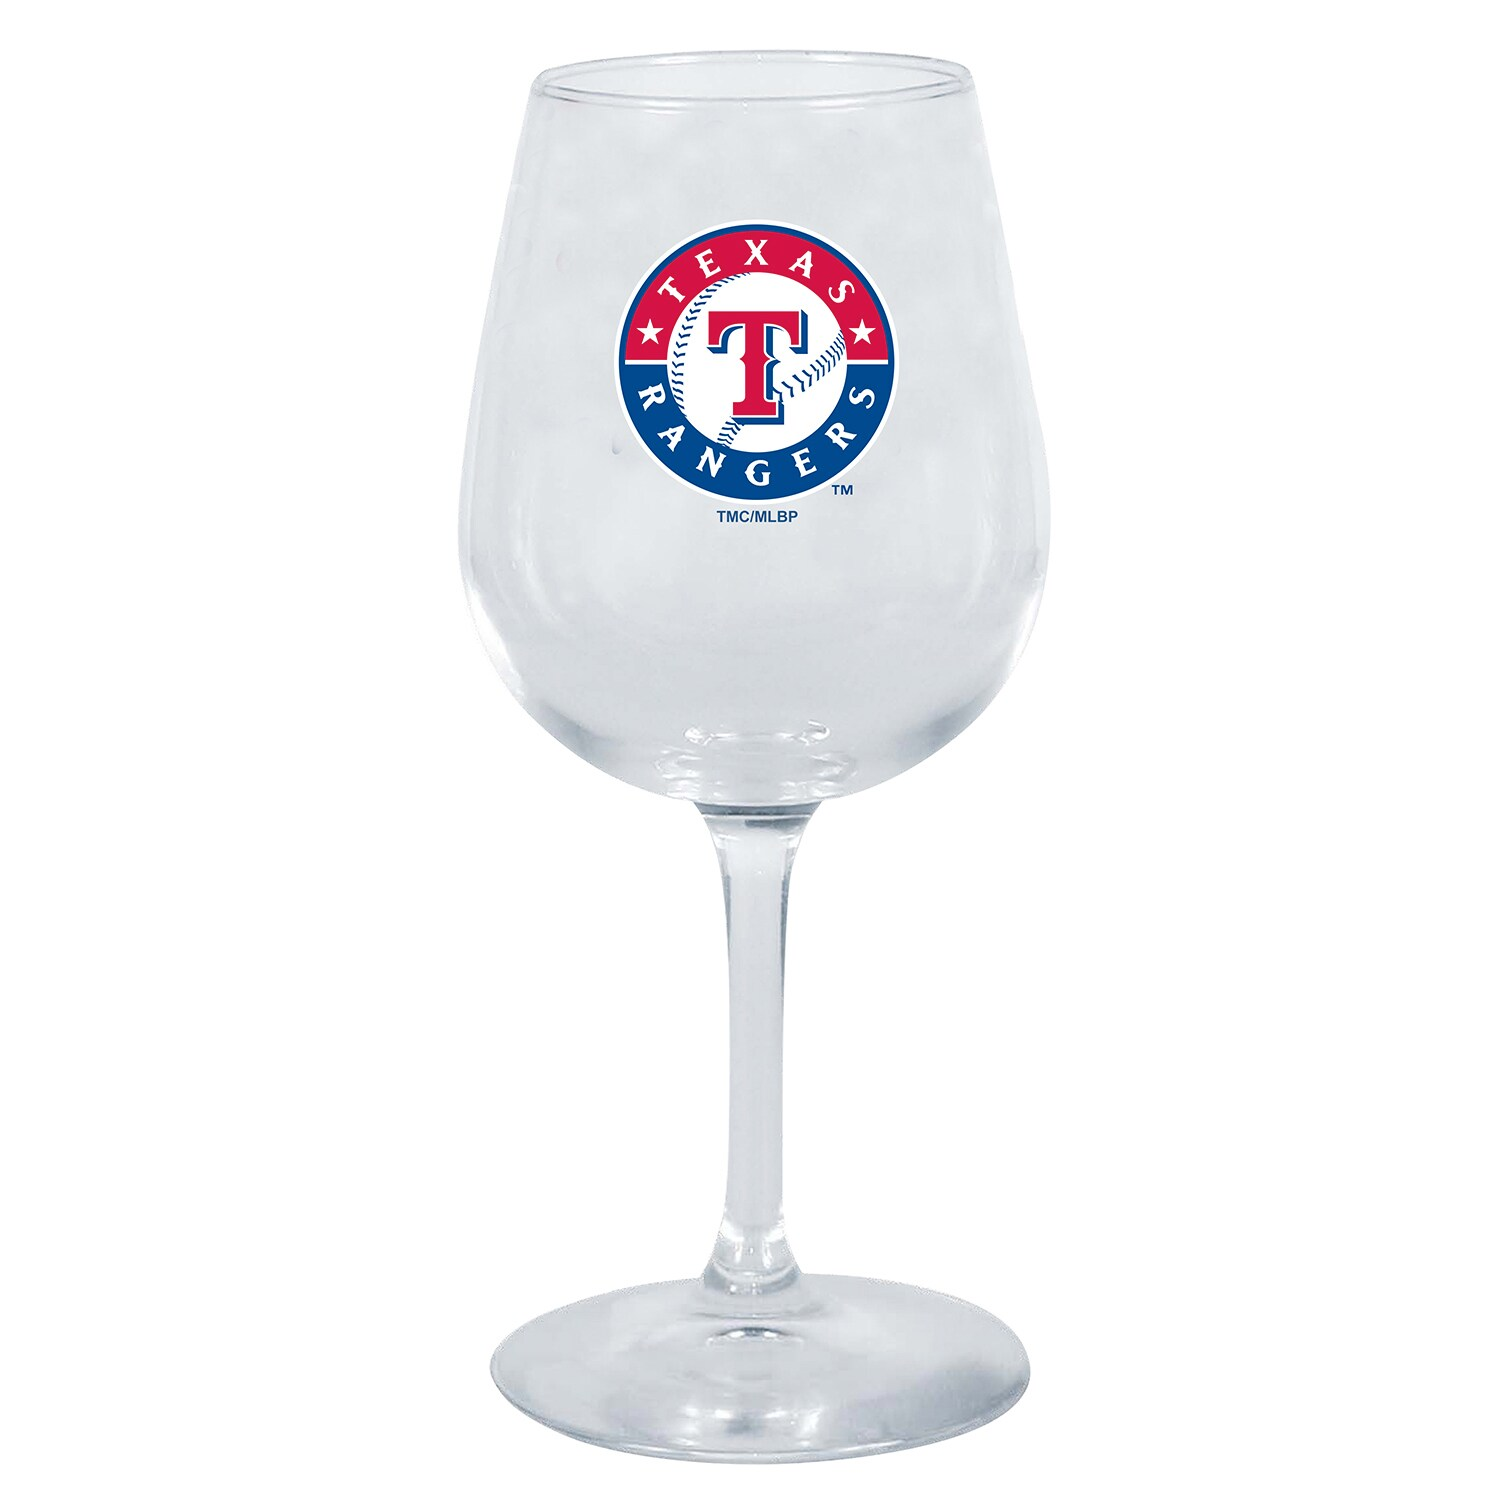 Texas Rangers 12oz. Stemmed Wine Glass